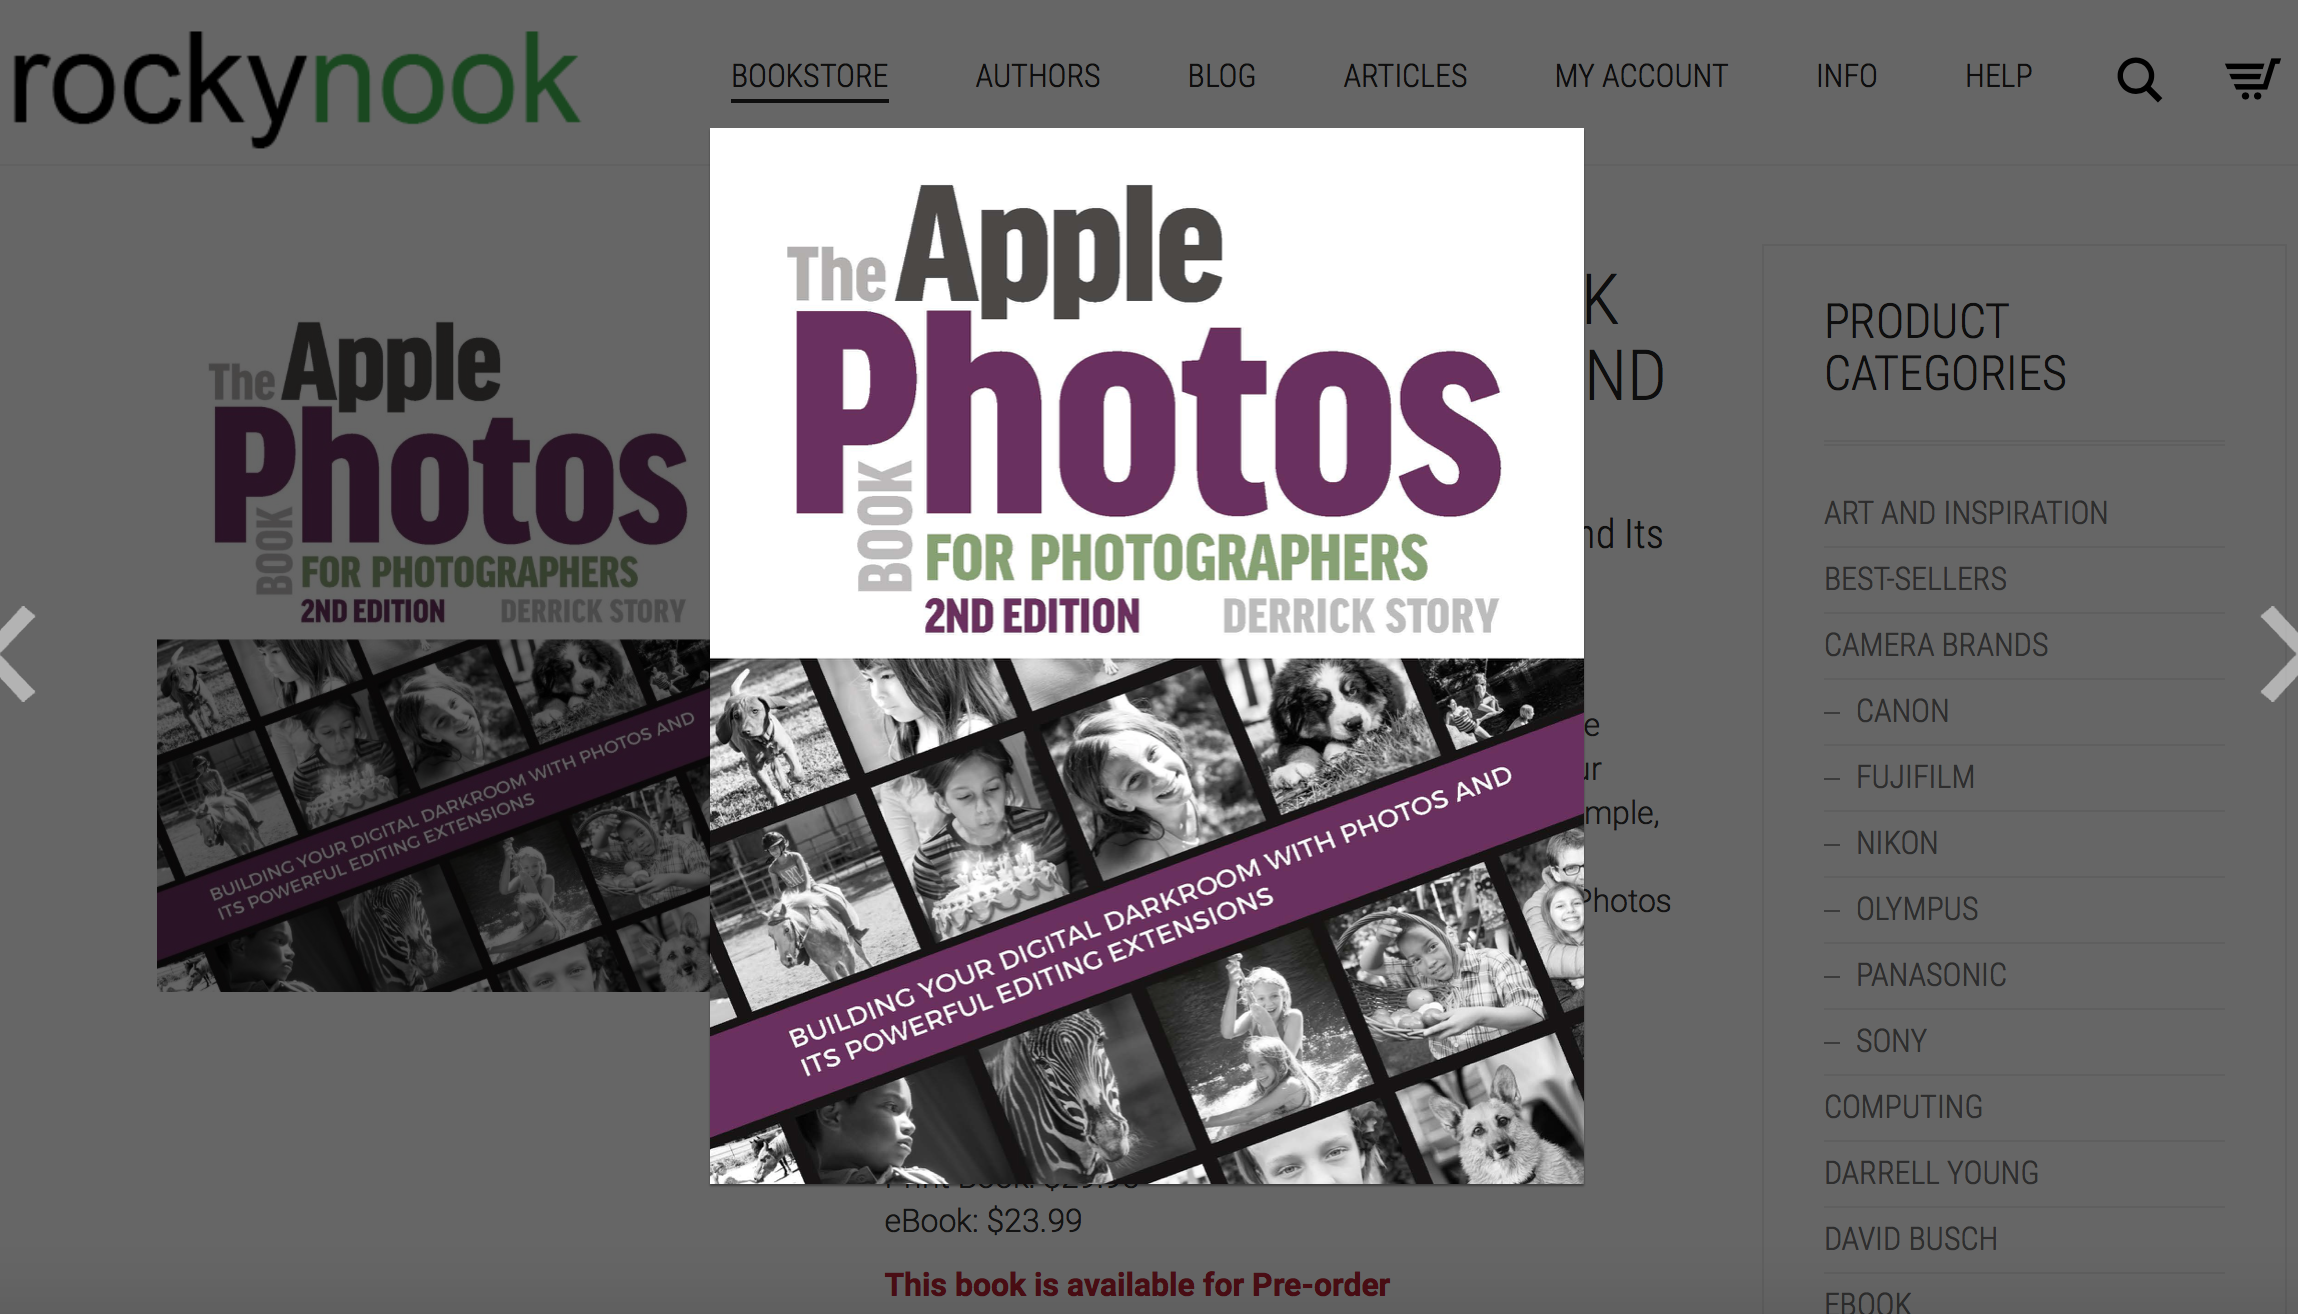 http://thedigitalstory.com/2018/02/22/Apple-Photos-Book.png